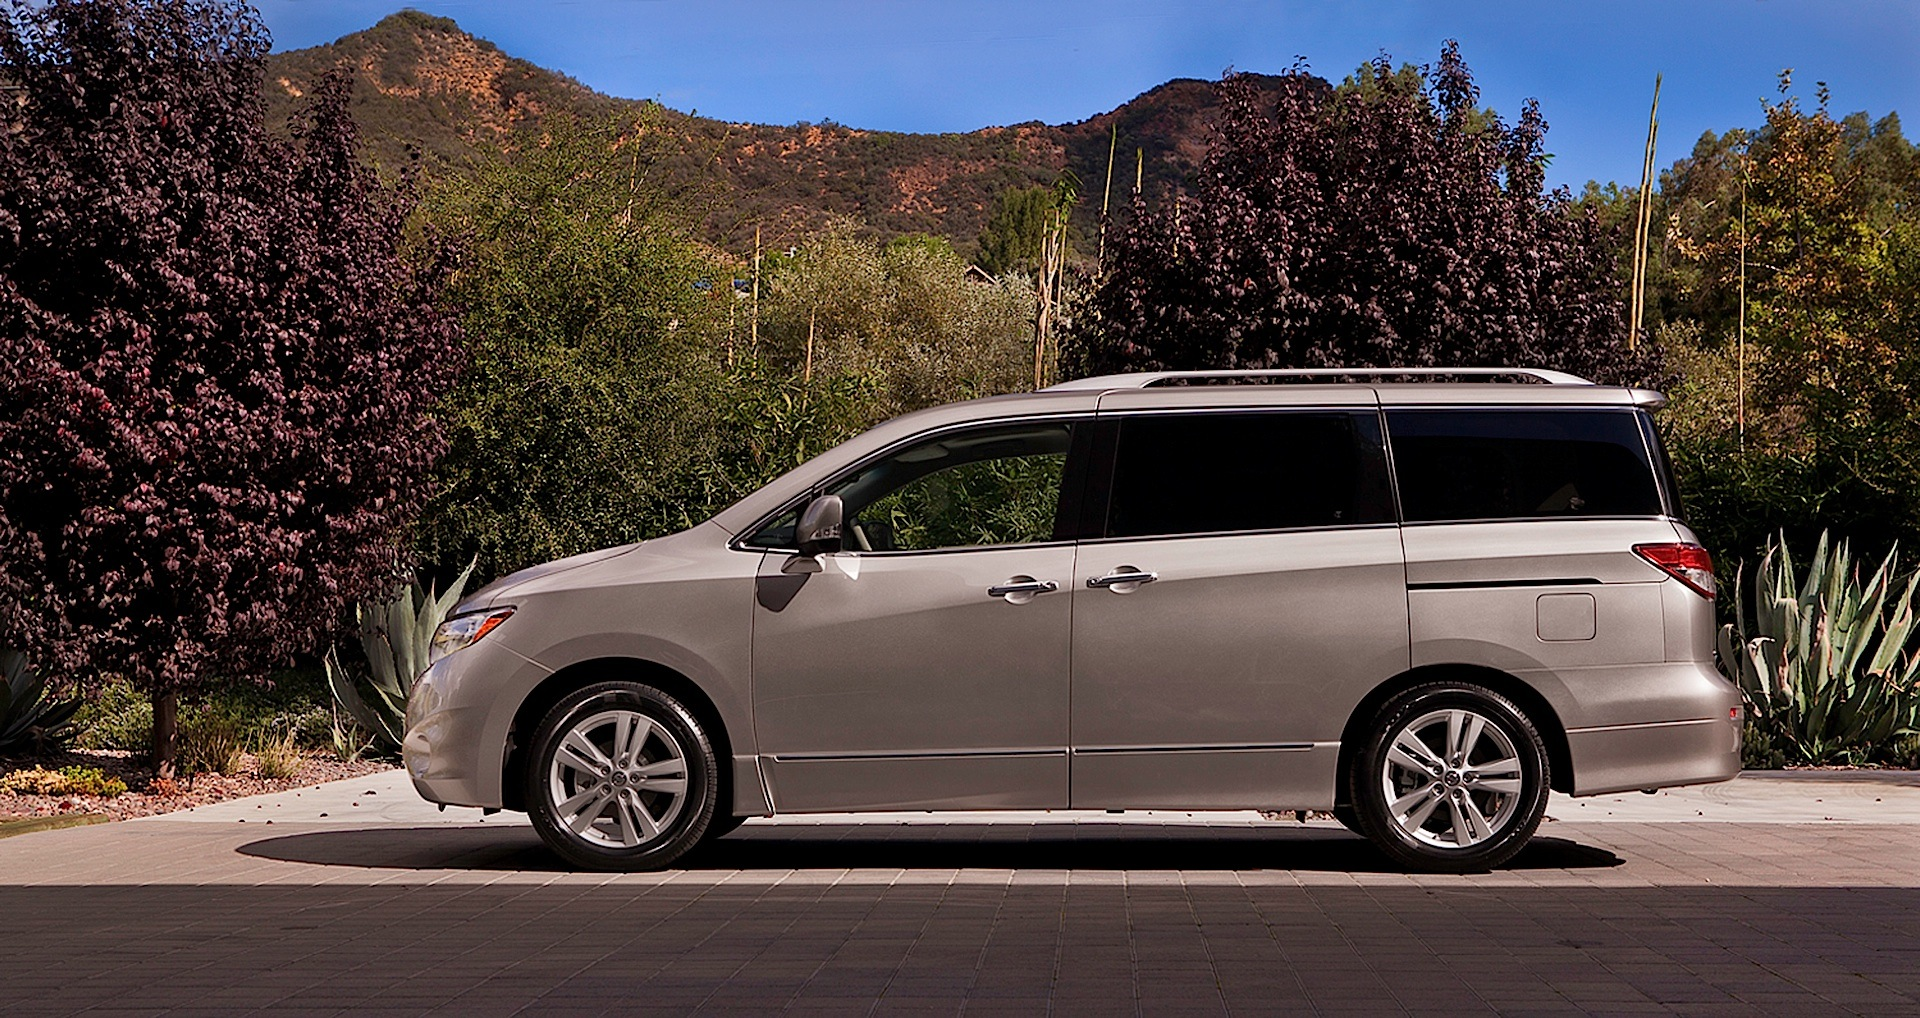 Nissan Altima 2.5 S >> NISSAN Quest specs & photos - 2011, 2012, 2013, 2014, 2015 ...